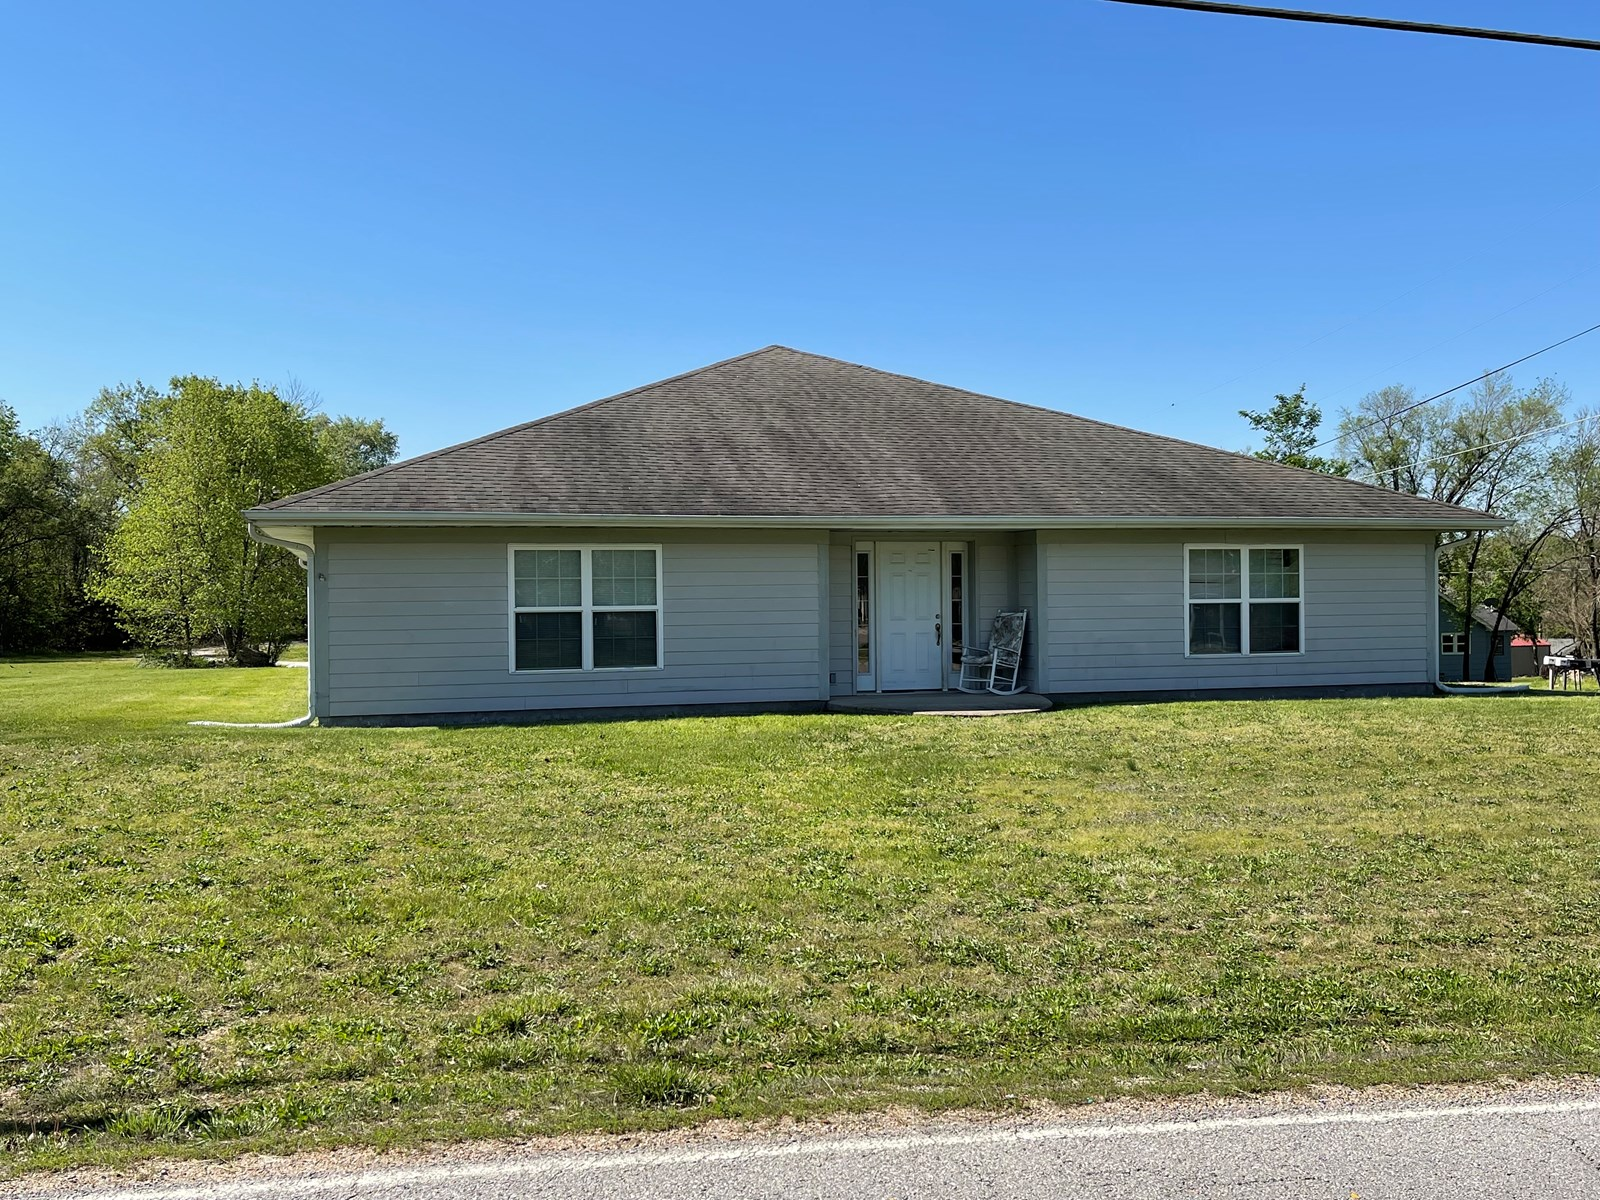 Rental Investment Opportunity, ready for new owner!